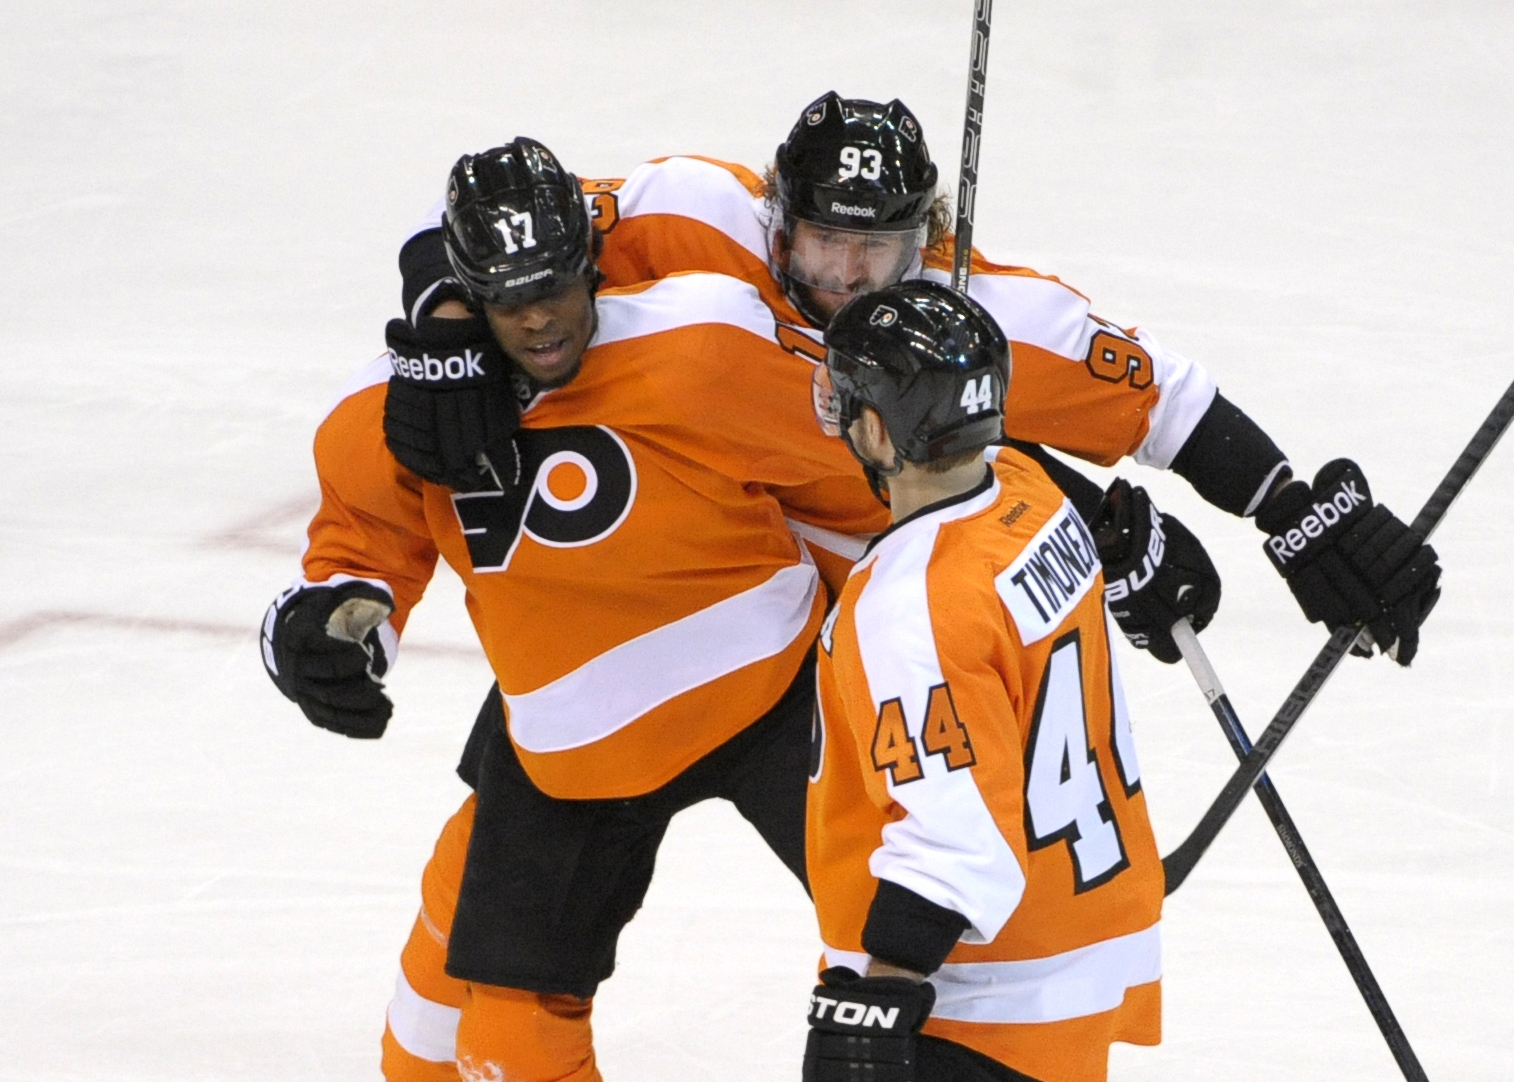 Playoff Hat Trick: Make It Three Game 7s After Flyers' Wayne Simmonds Breaks Out Vs. Rangers